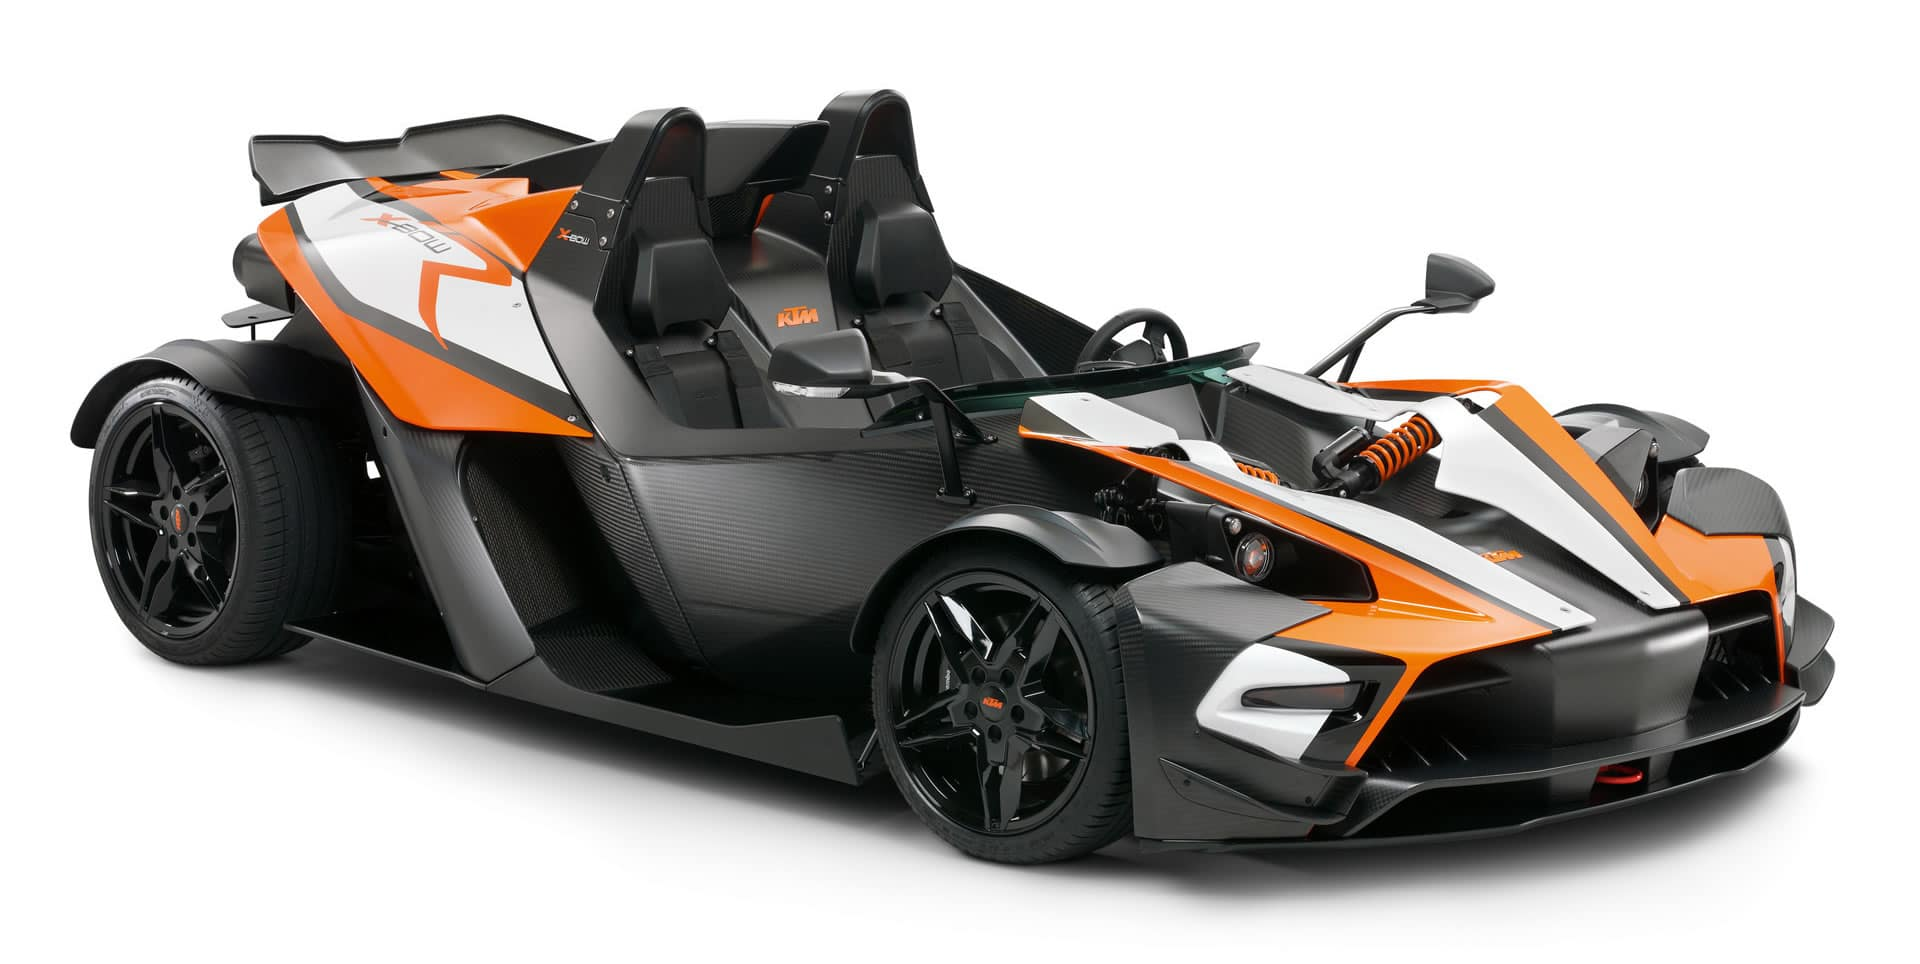 Ktm Crossbow Gt Price